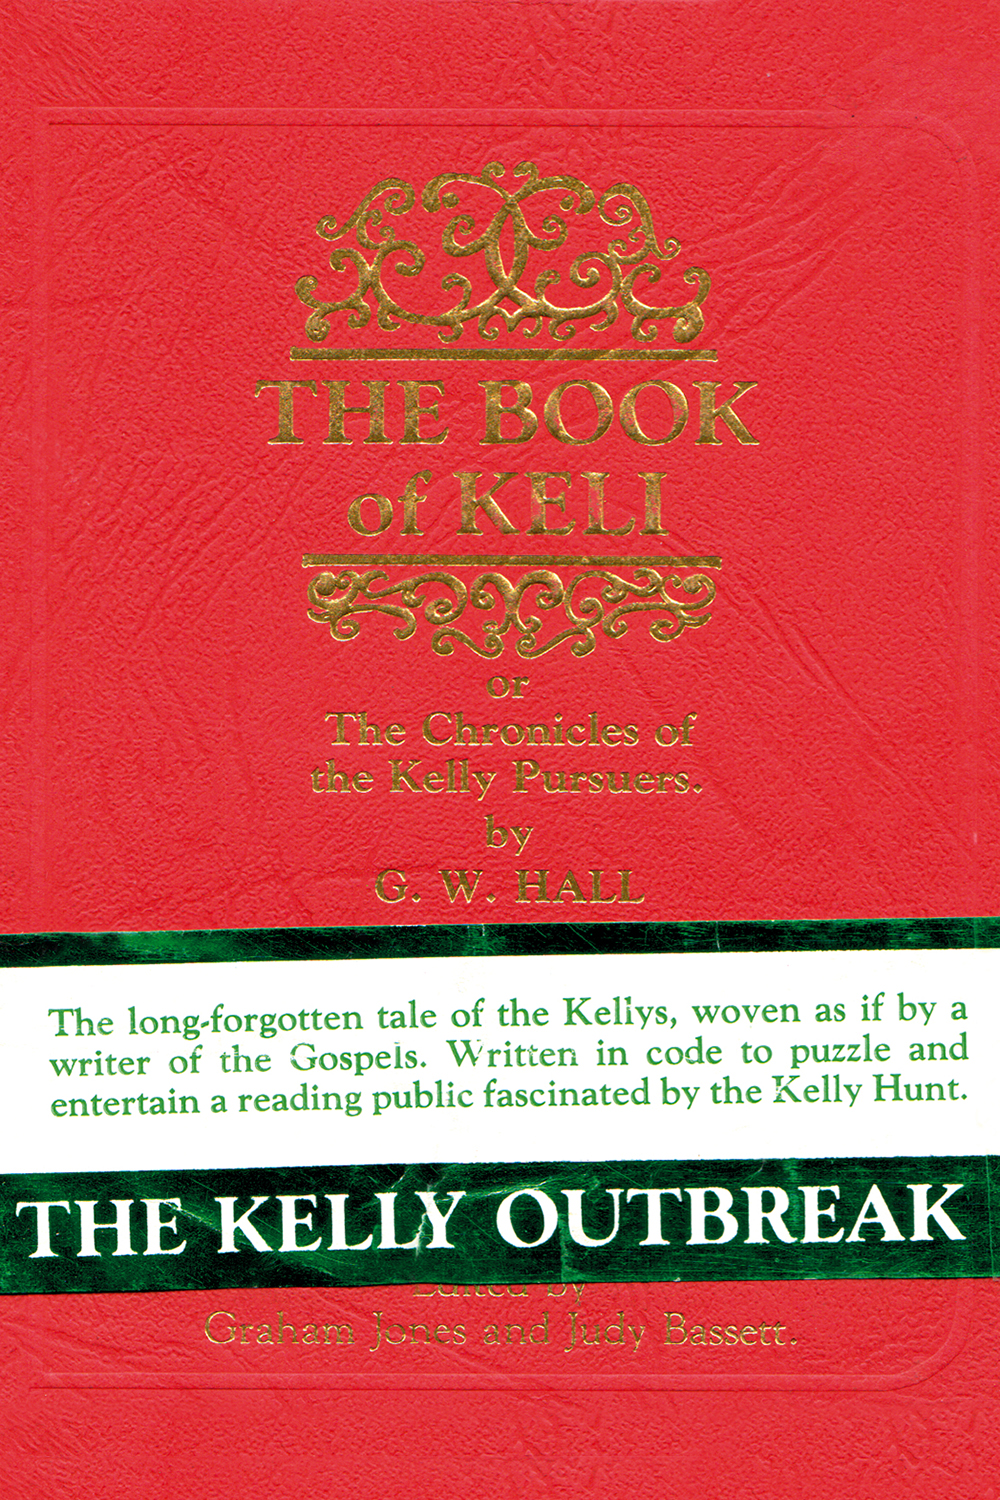 The Book Of Keli: The Chronicles of the Kelly Pursuers by G.W. Hall